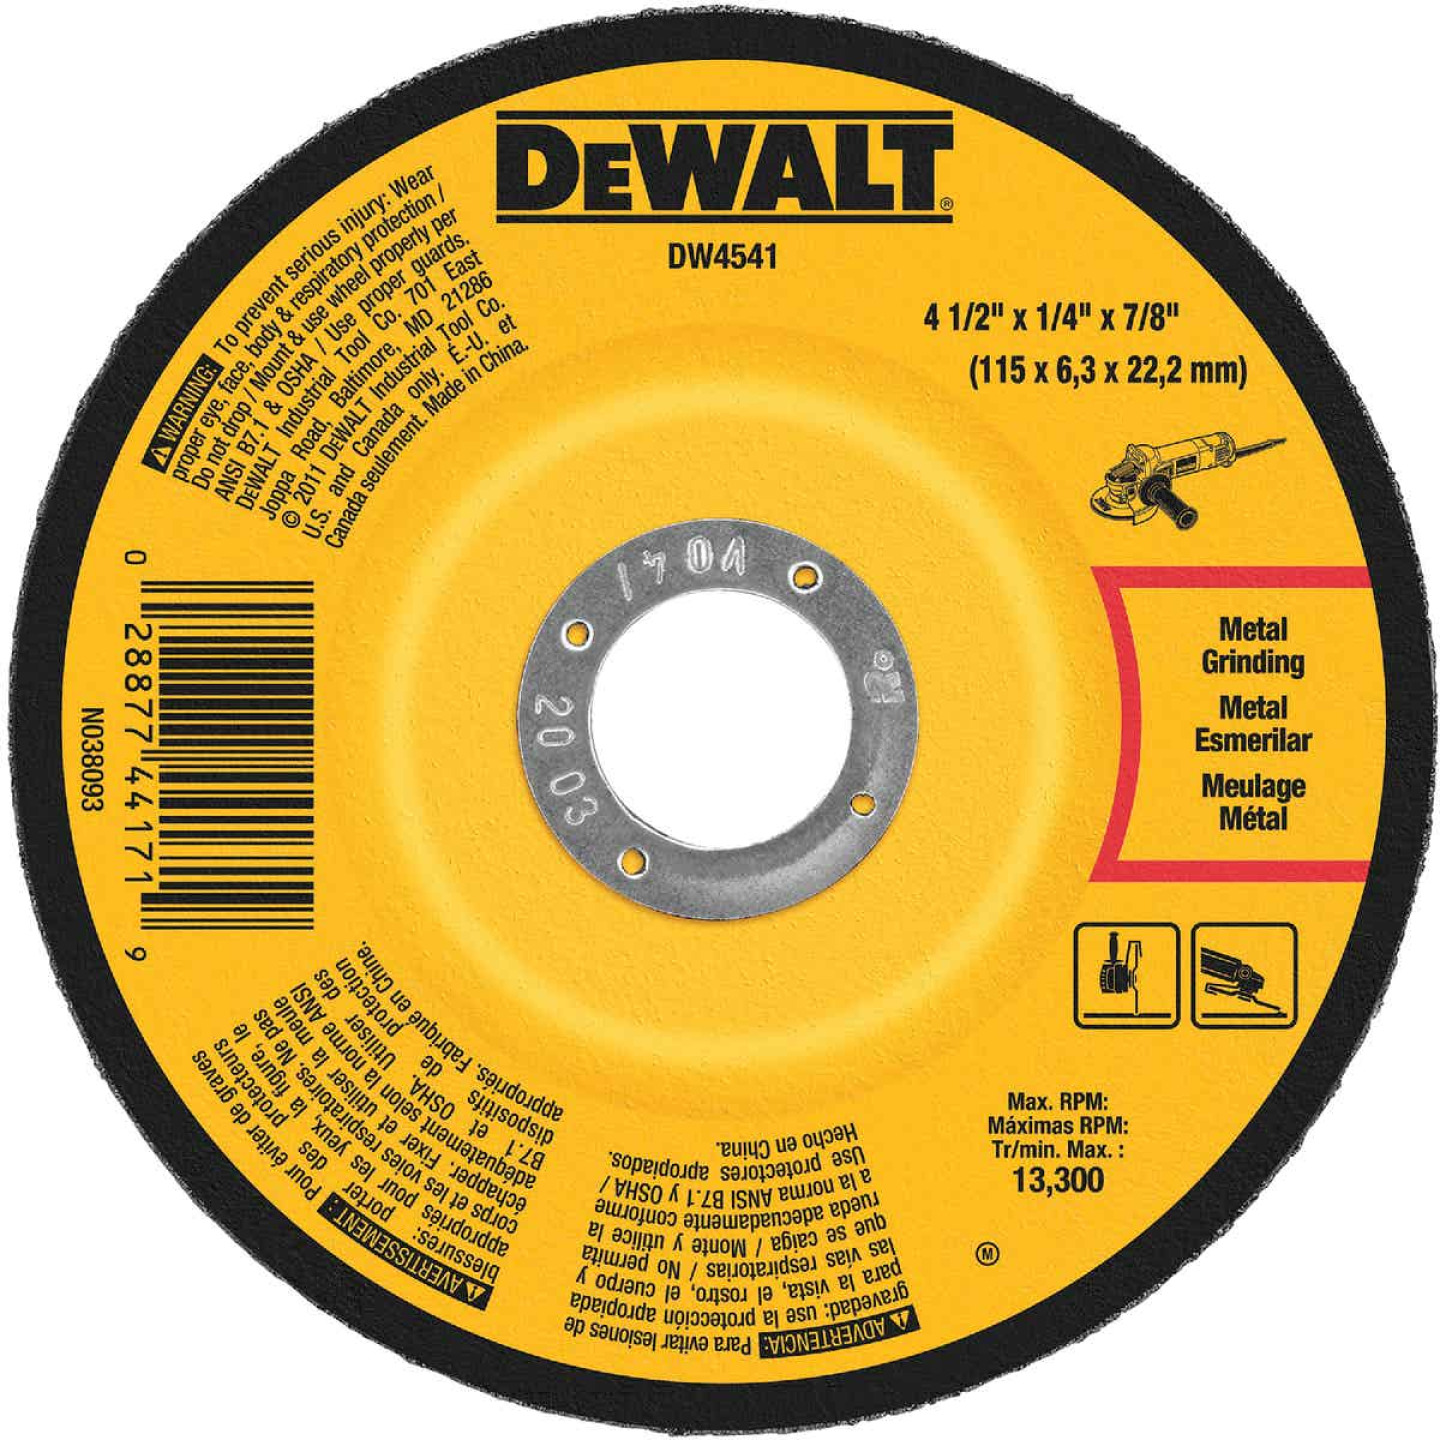 DeWalt HP Type 27 4-1 In. x 1/4 In. x 7/8 In. Metal/Stainless Grinding Cut-Off Wheel Image 1